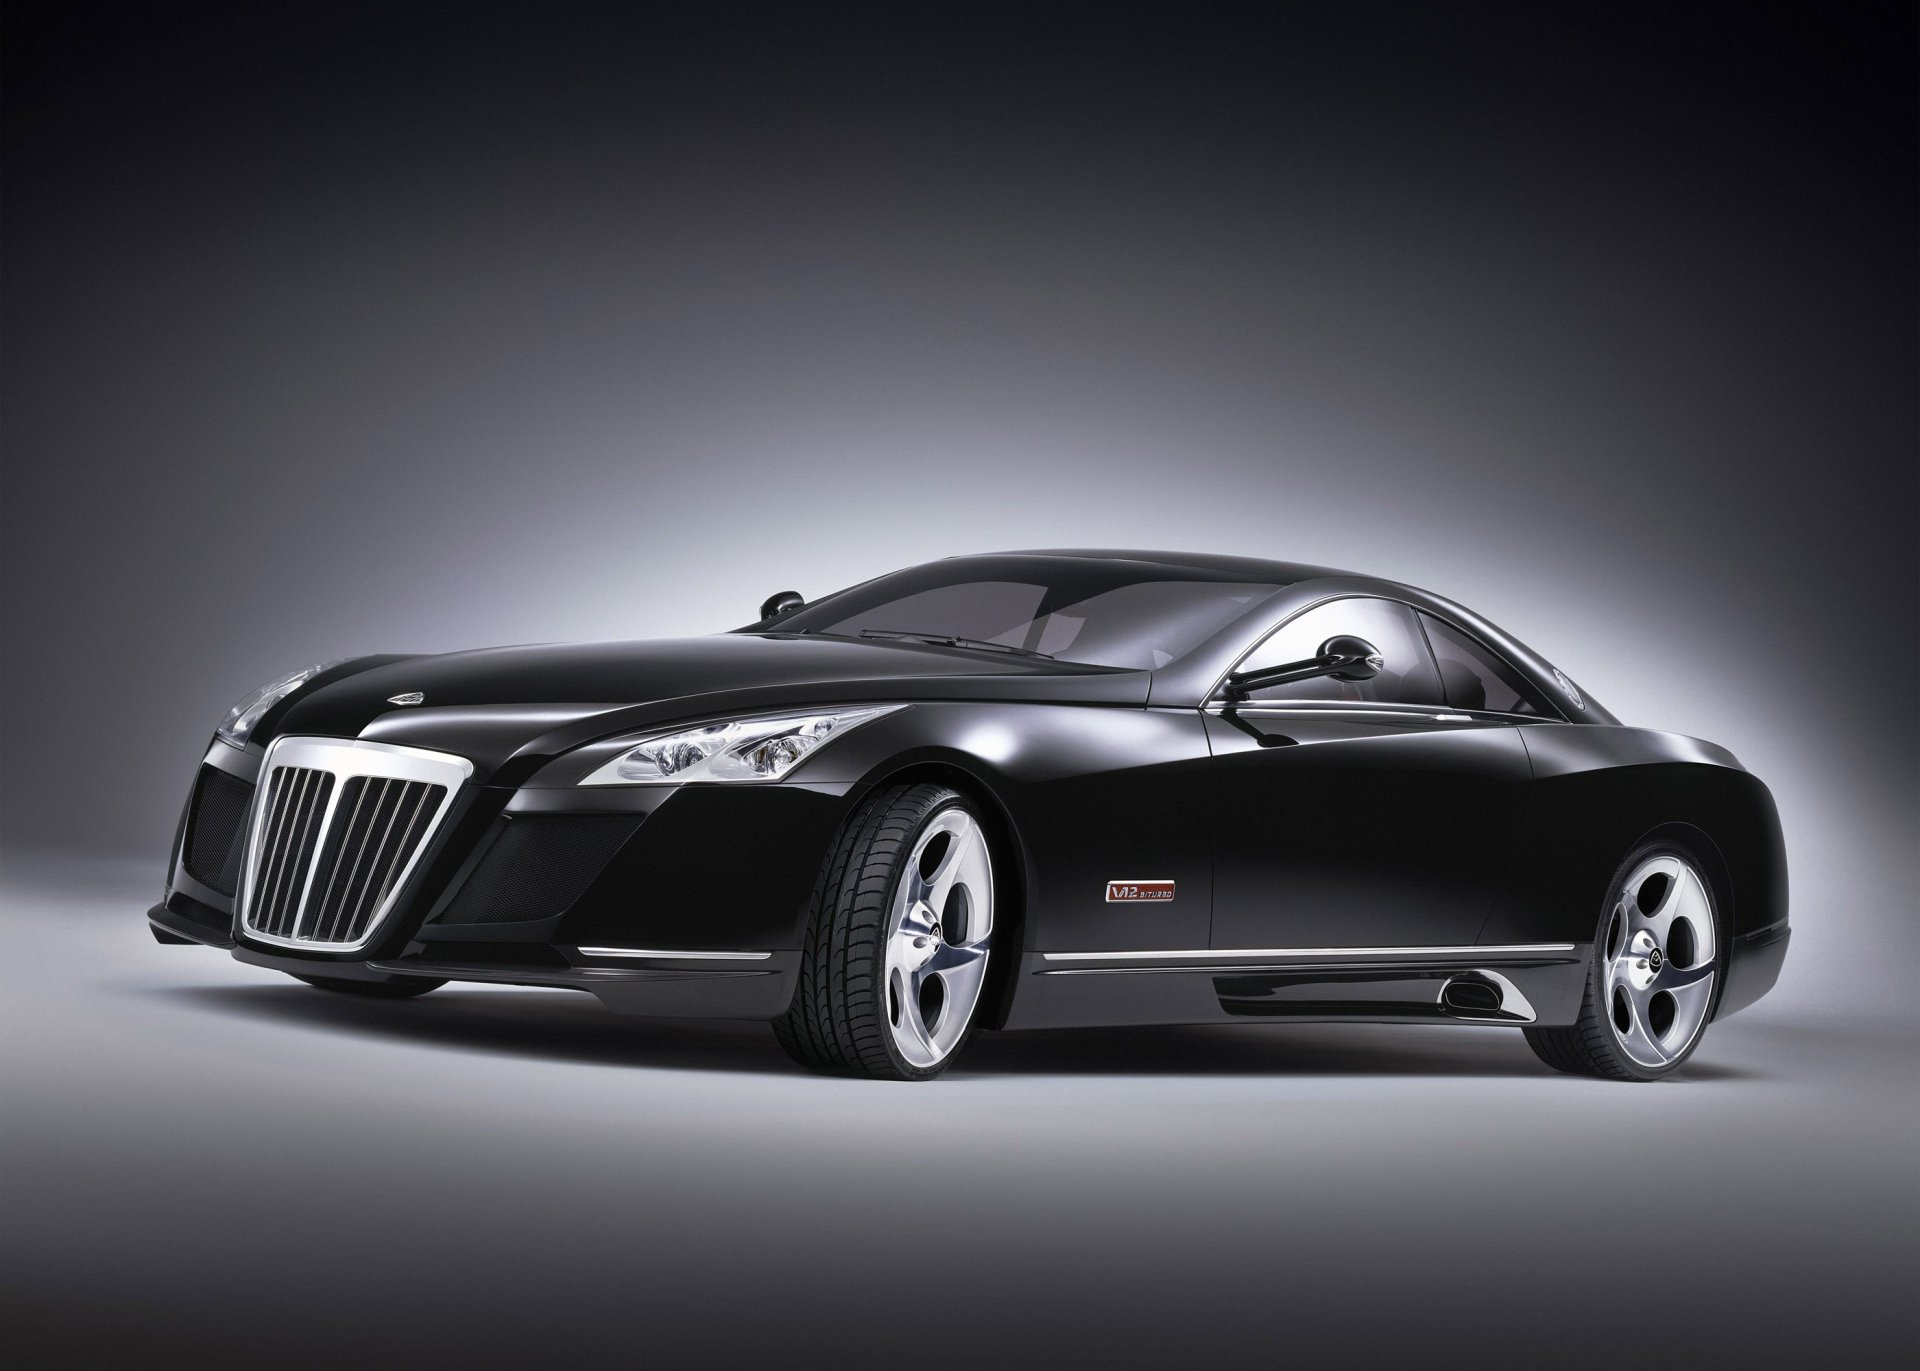 4 Maybach Exelero Hd Wallpapers Background Images Wallpaper Abyss